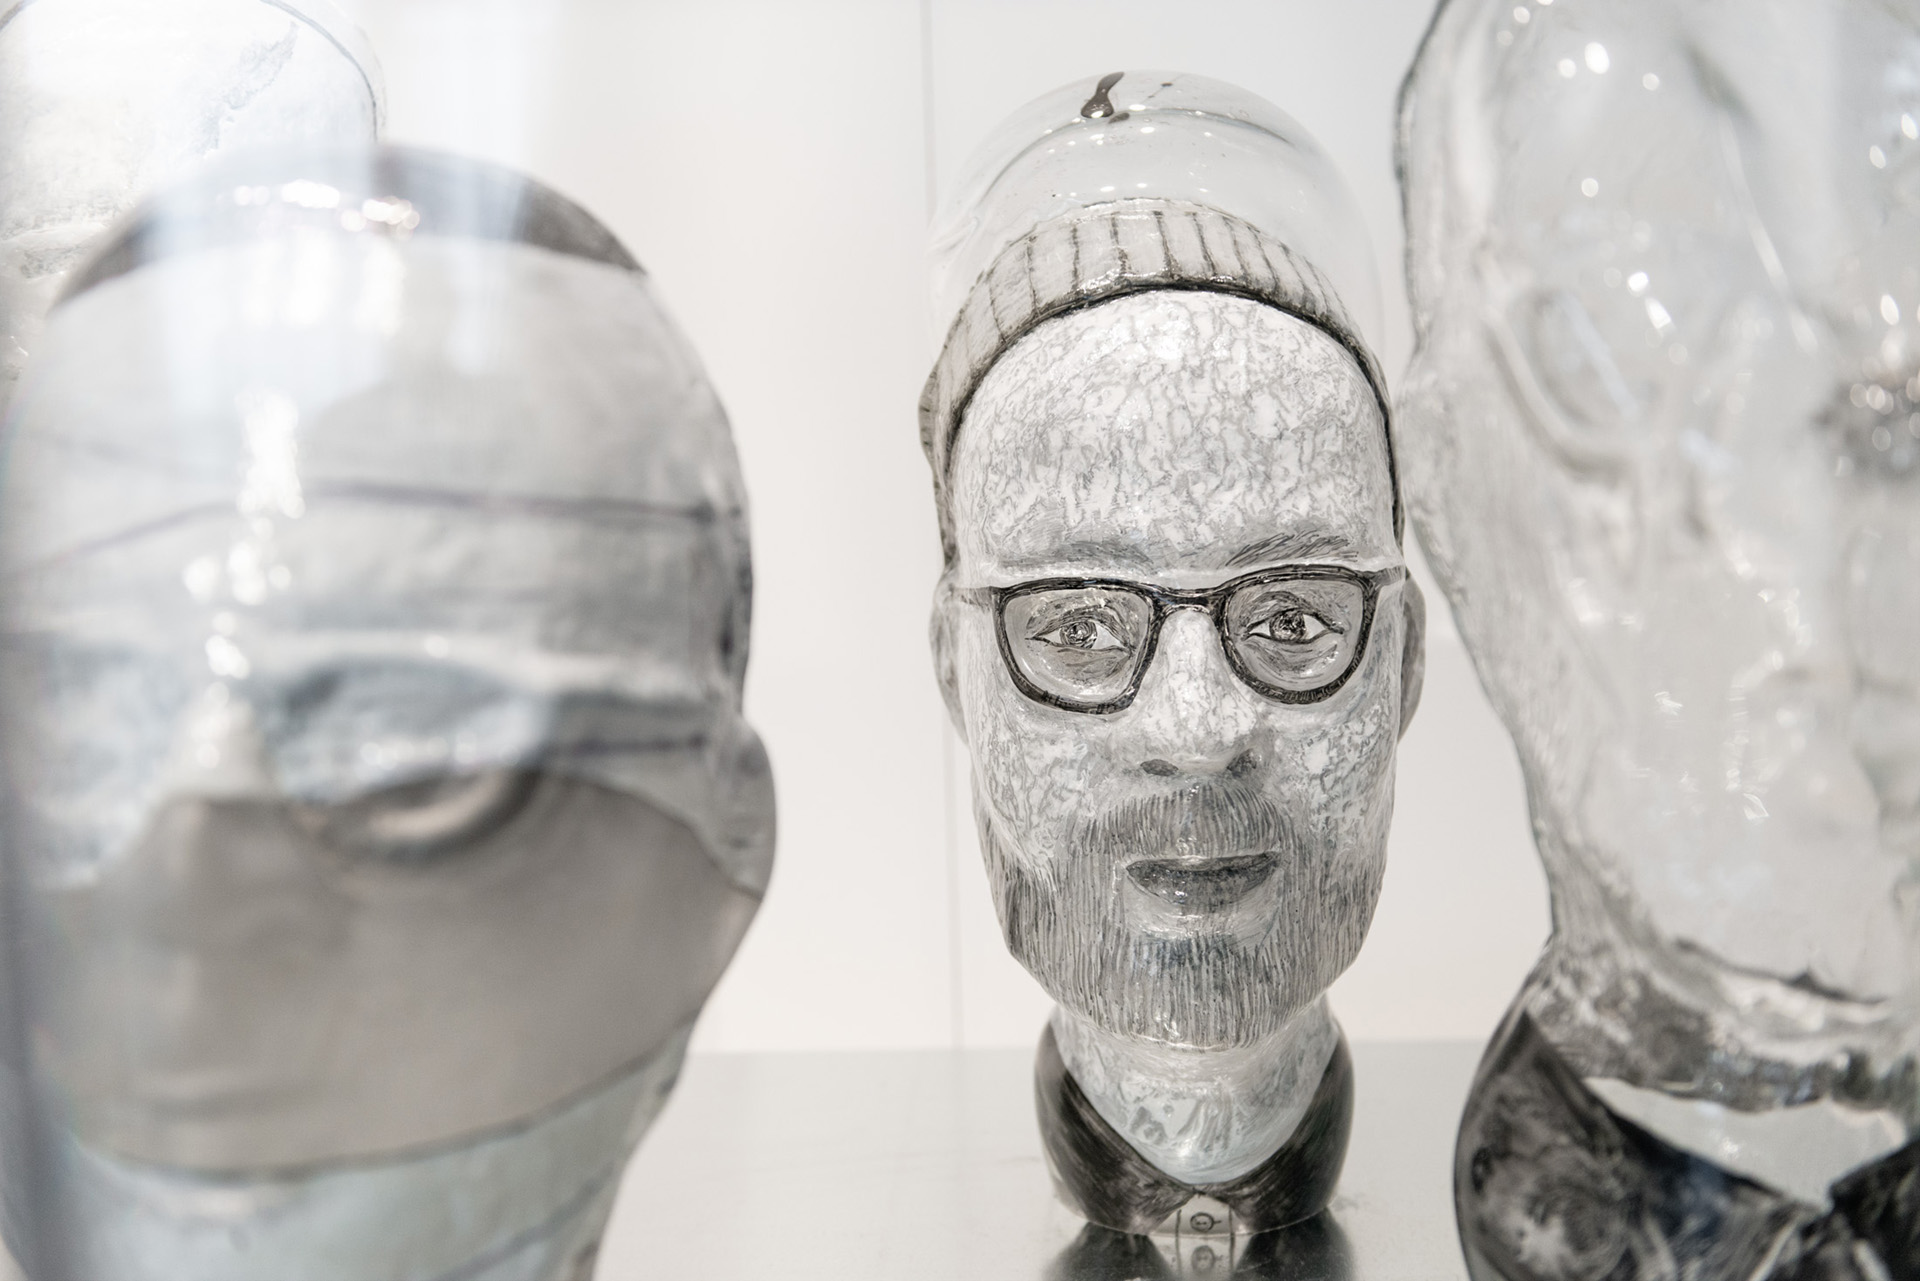 Glass head at the Corning Museum of Glass